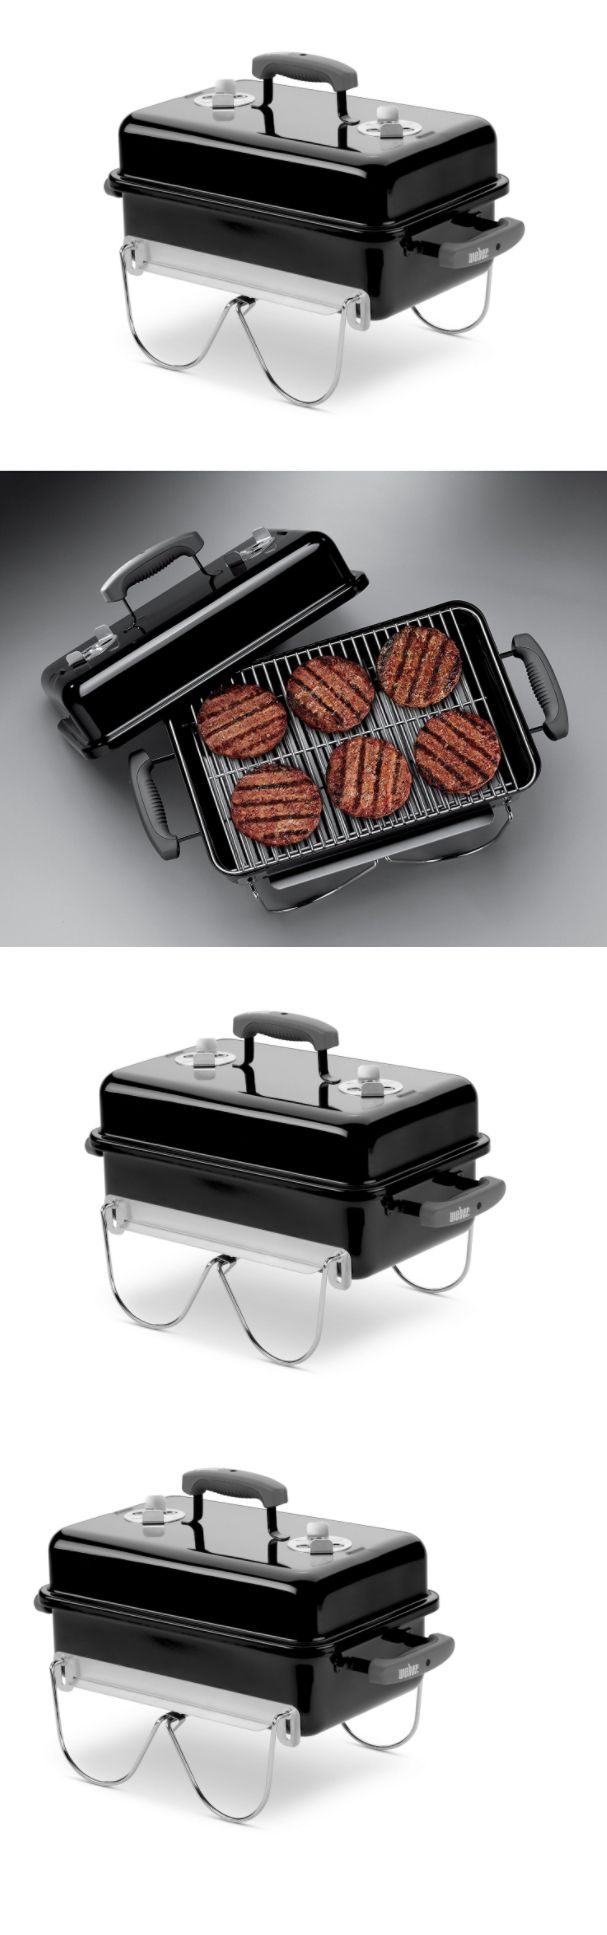 Camping BBQs and Grills 181388: Small Portable Charcoal Grill Grills For Camping Gear Cooking Barbeque Chef Best -> BUY IT NOW ONLY: $71.97 on eBay!